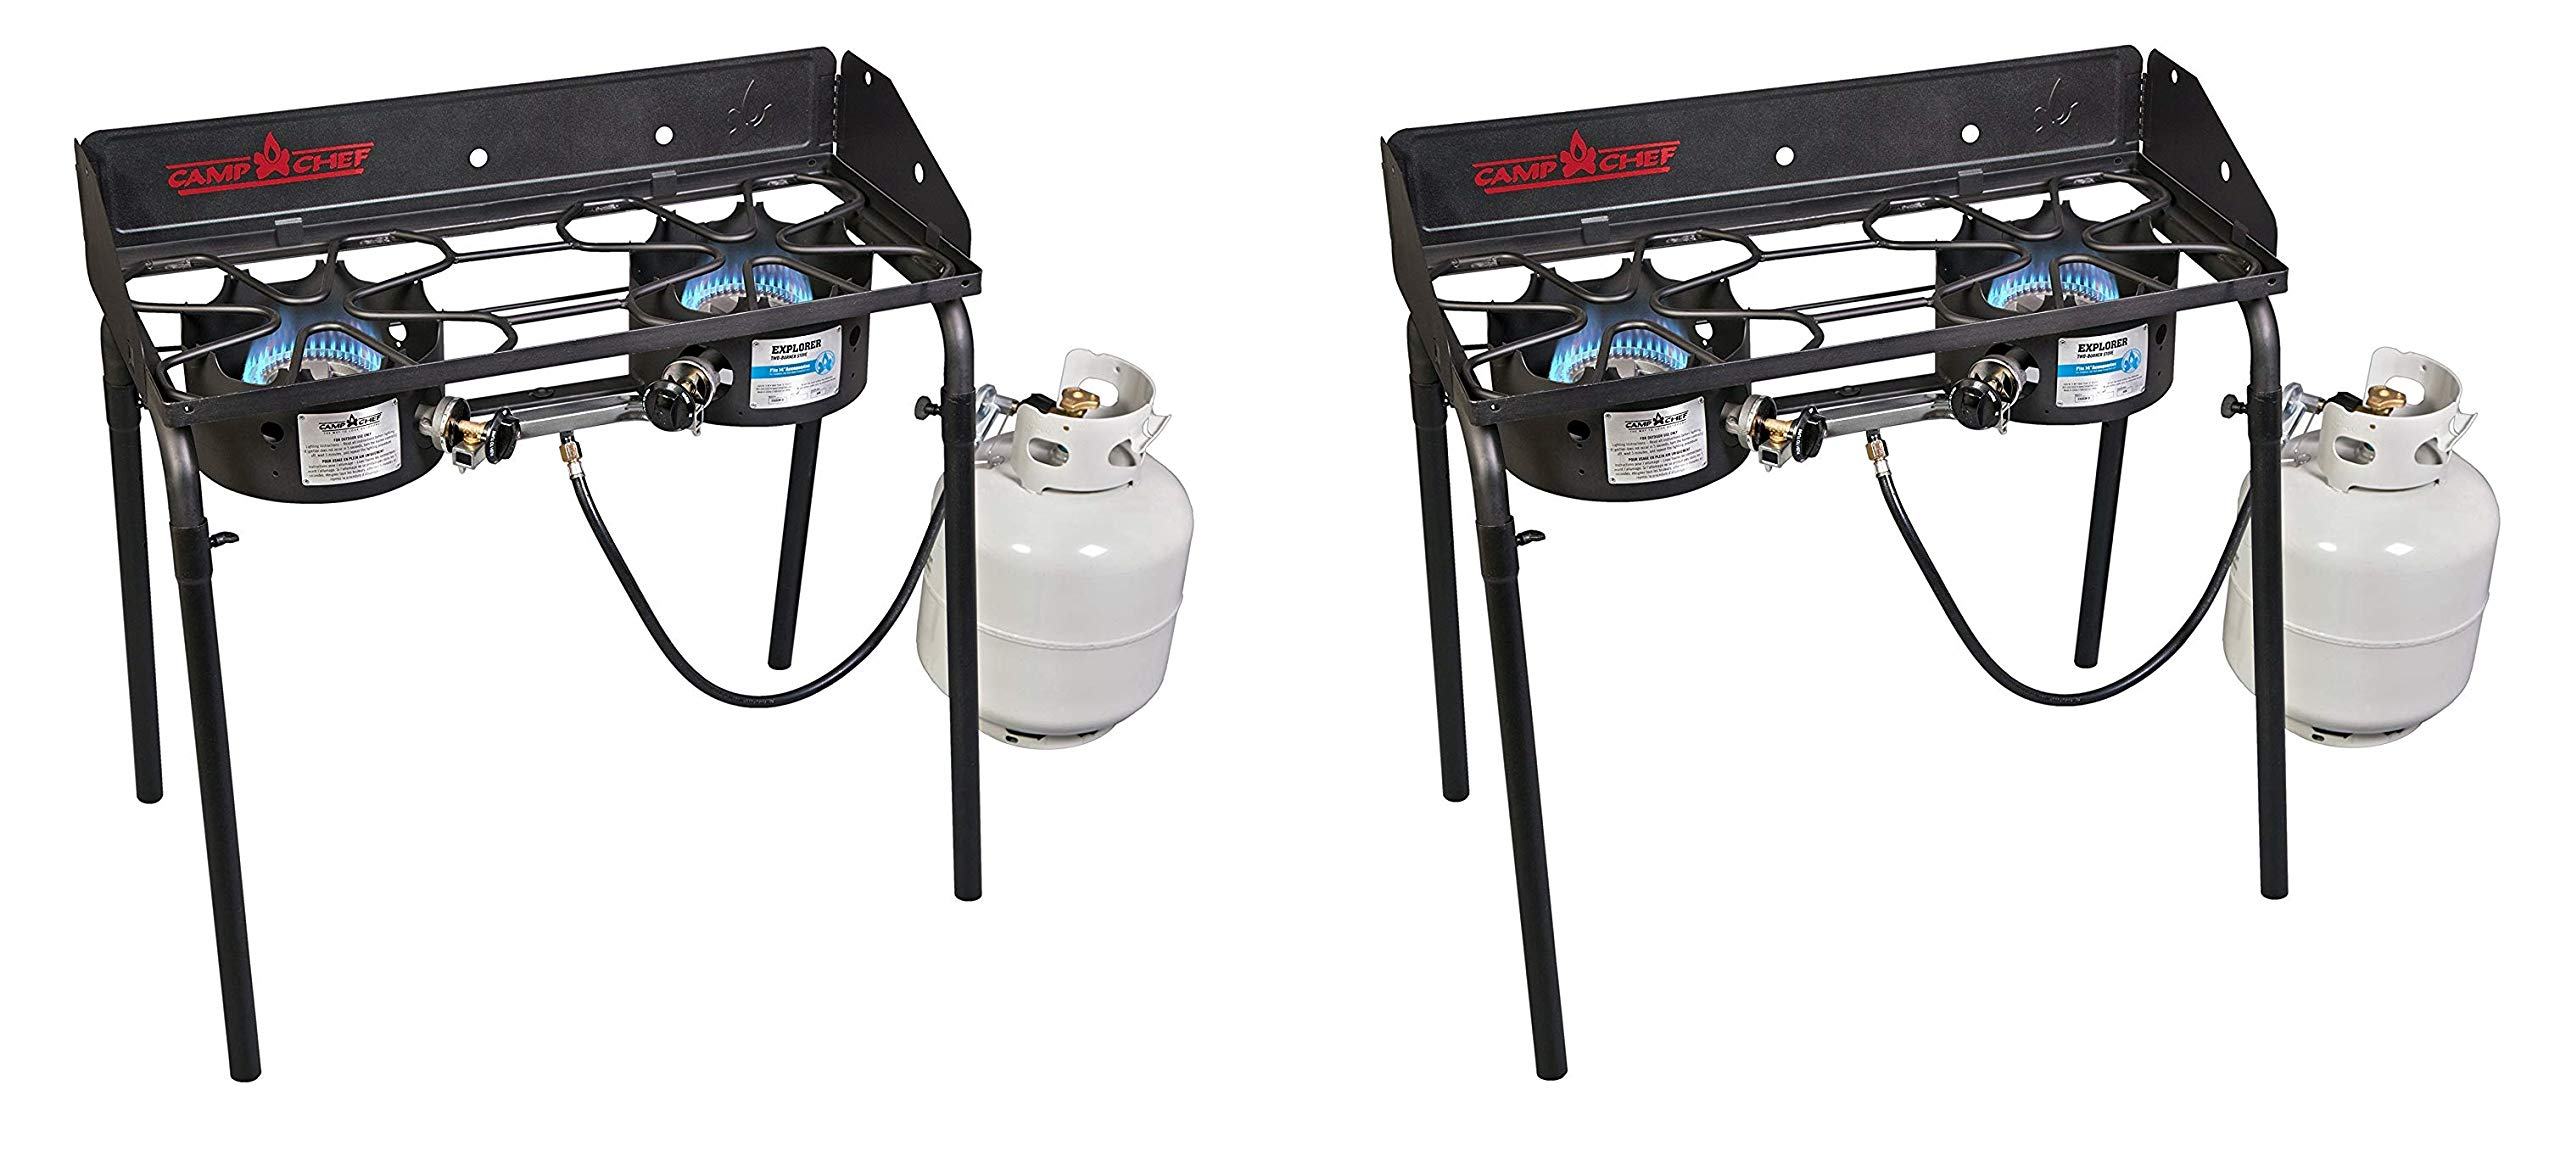 Camp Chef EX60LW Explorer 2 Burner Outdoor Camping Modular Cooking Stove (Pack of 2)